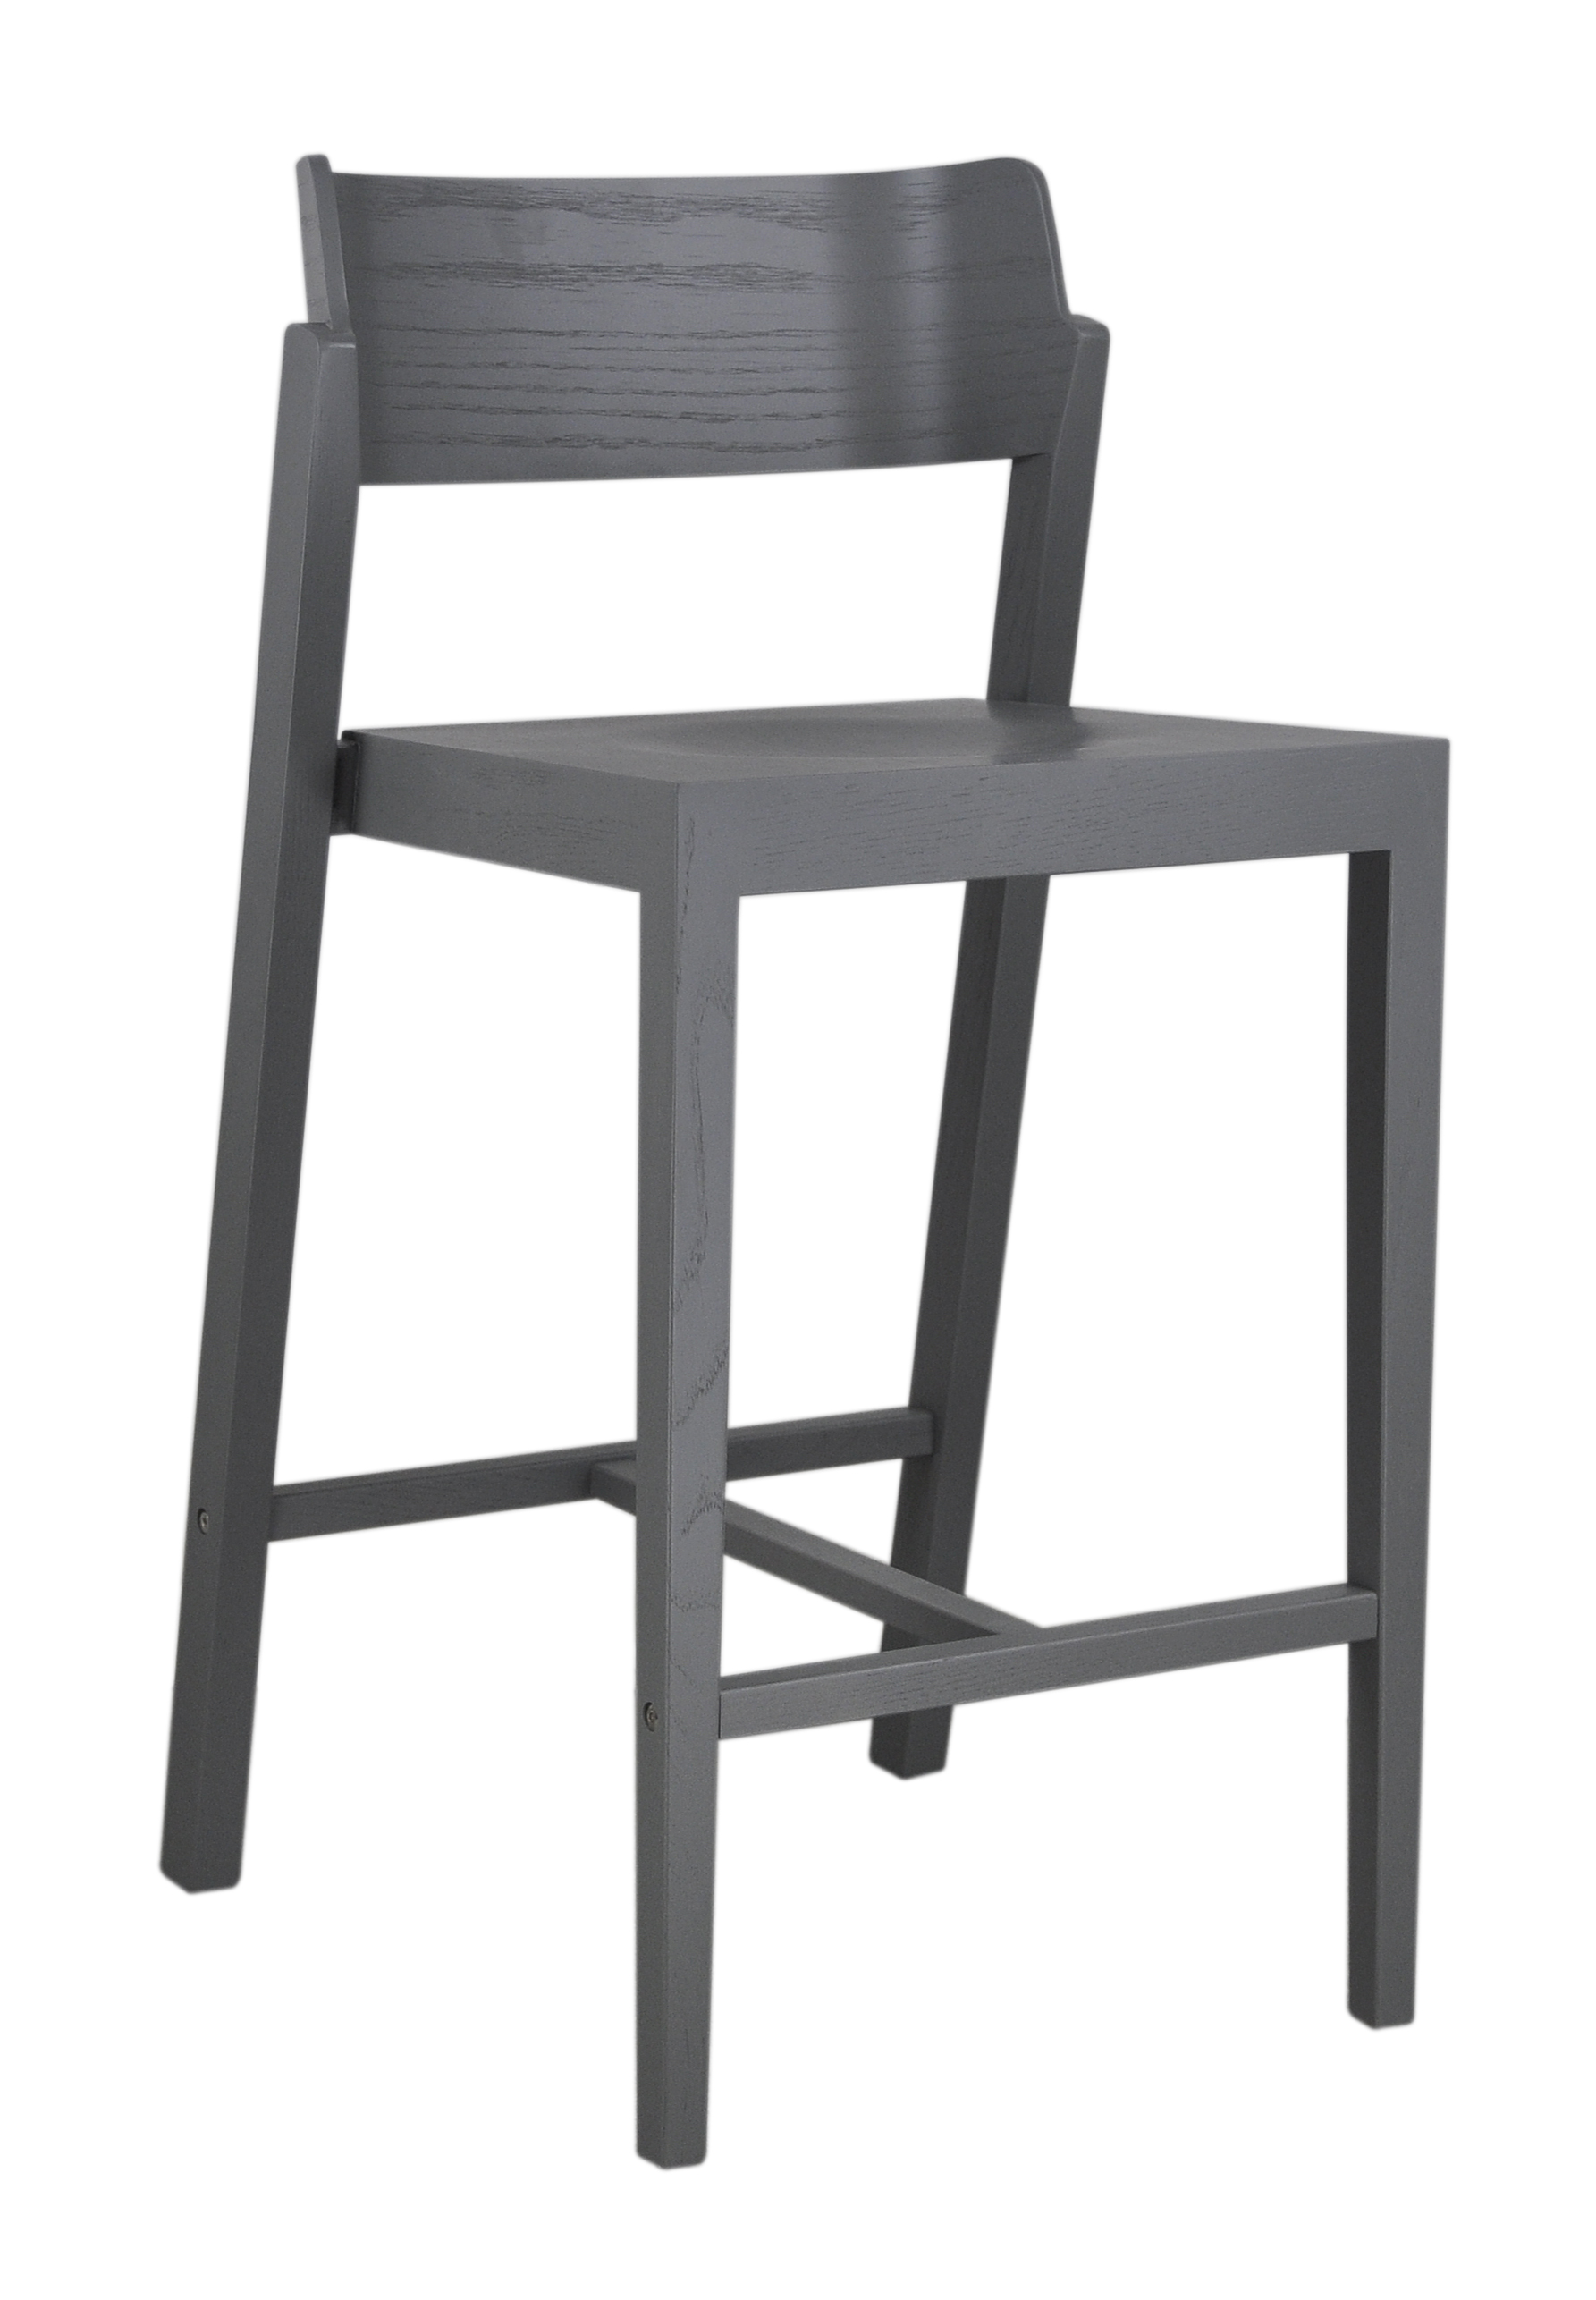 The 100 Counter Stool in grey